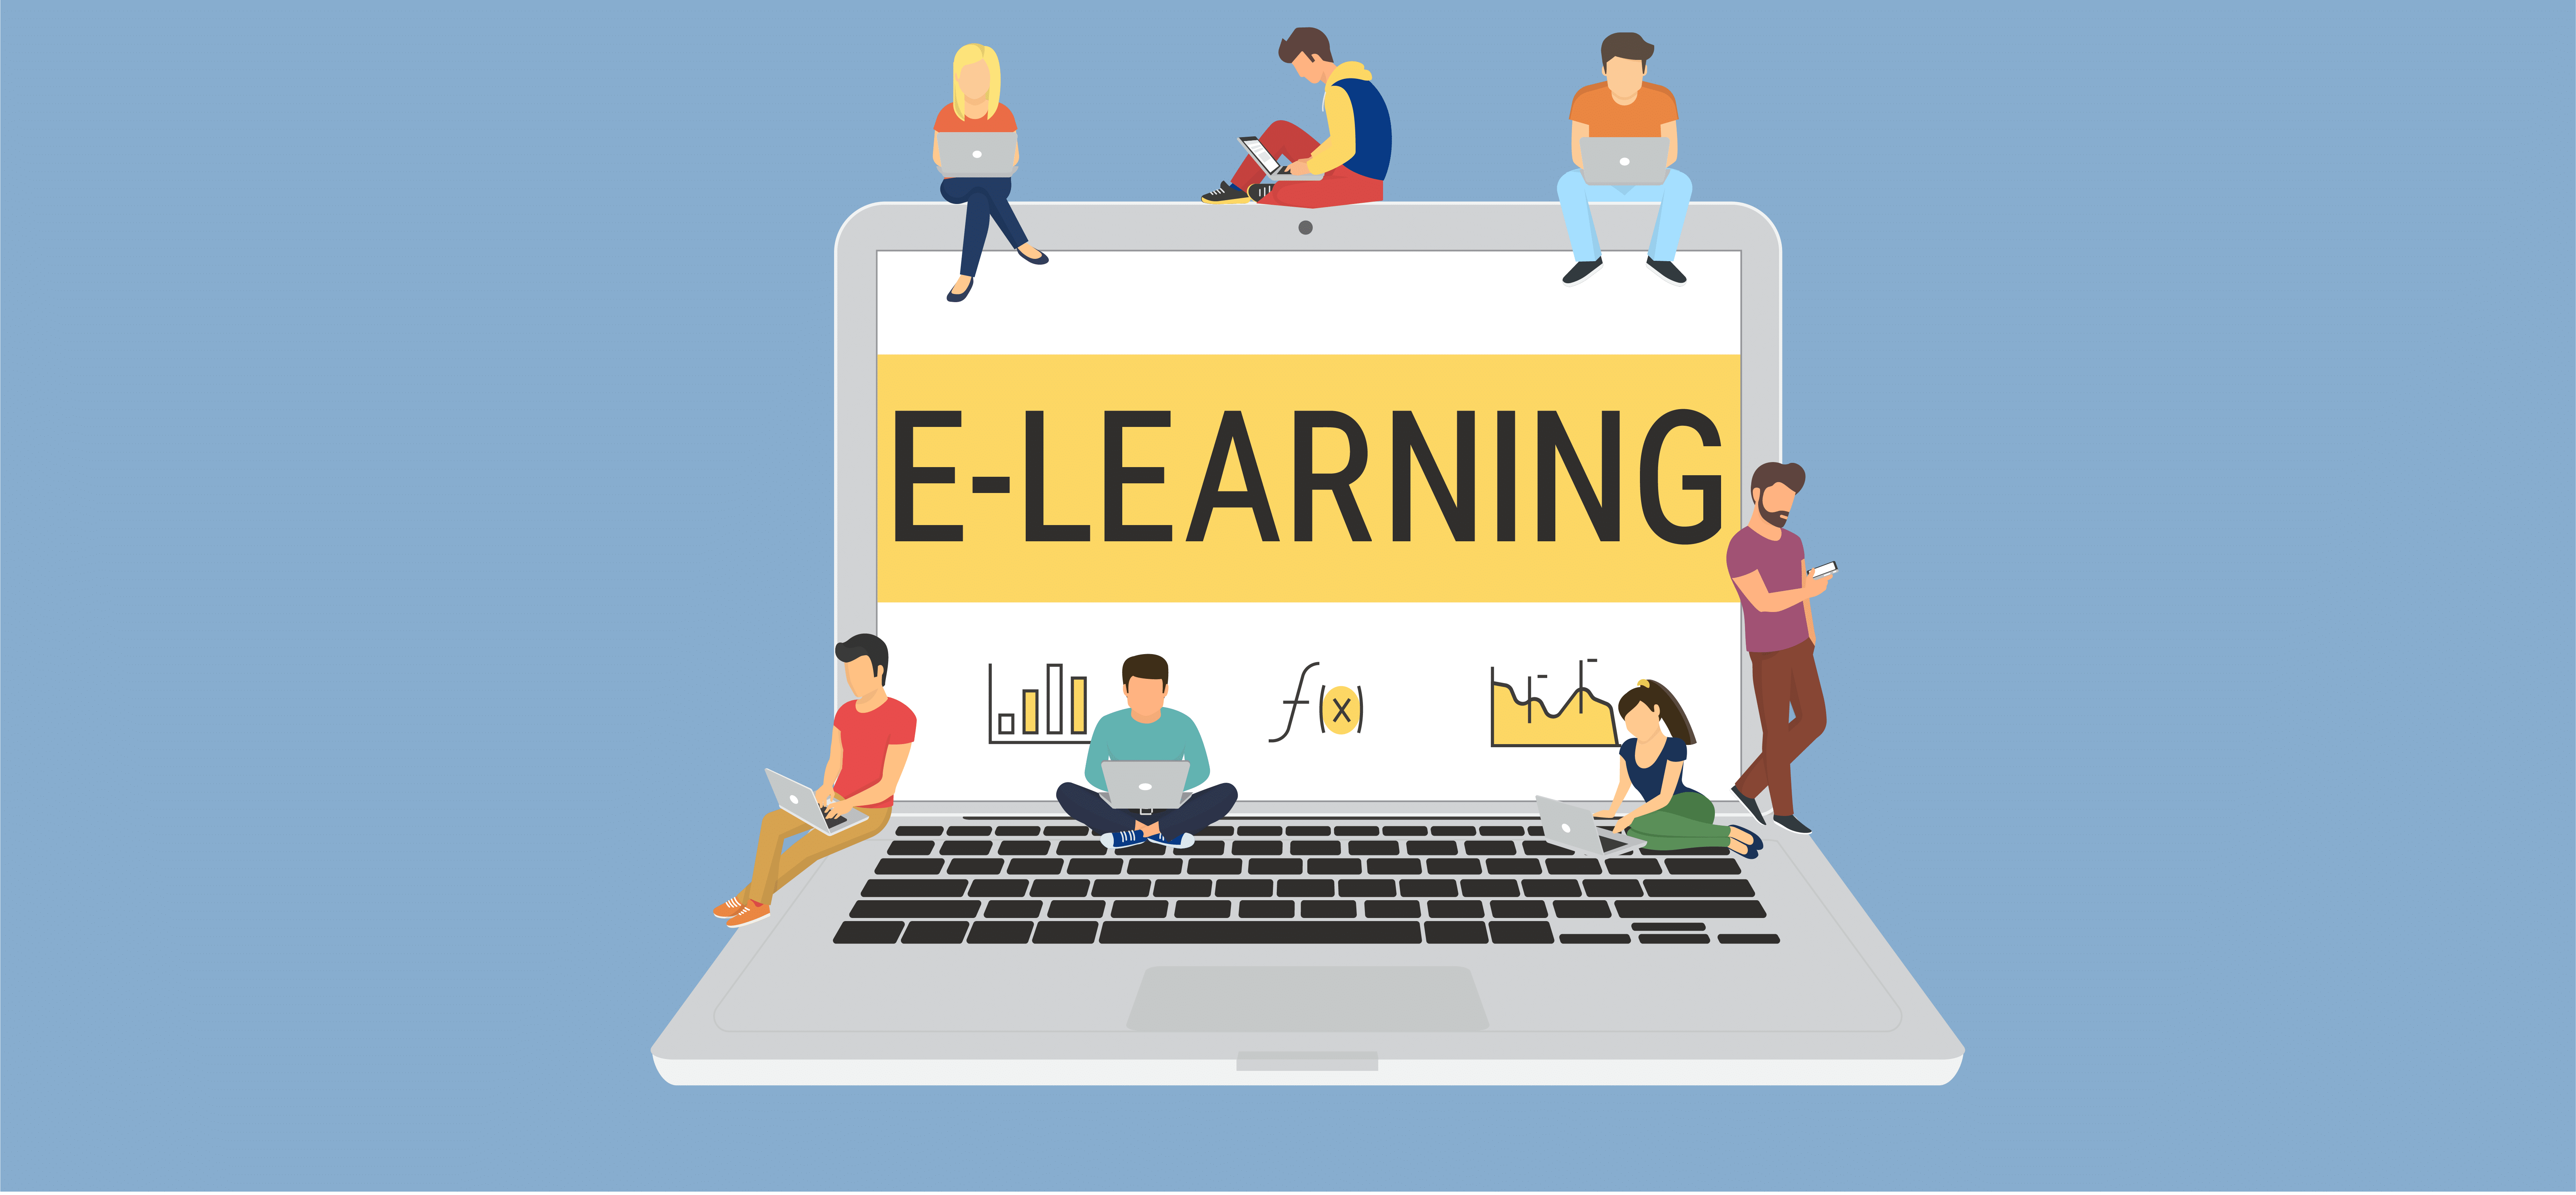 5 Things to Consider Before Building Your E-Learning Platform